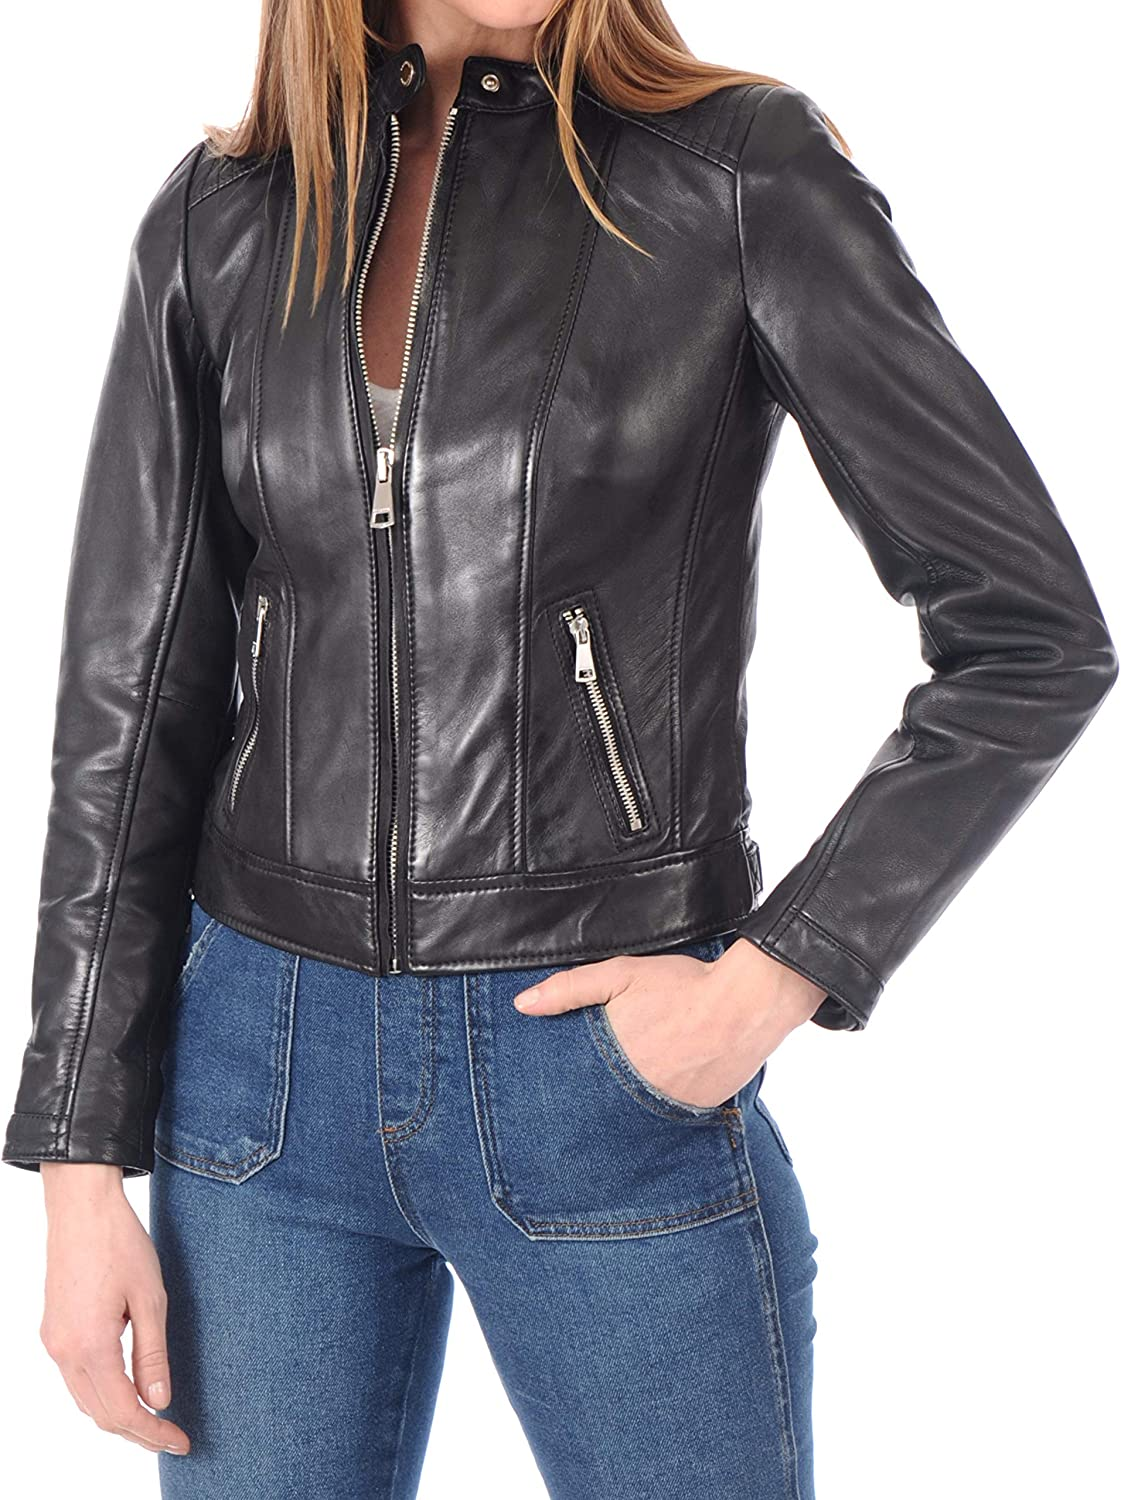 KAINAT Women's Motorcycle Bomber Biker Jacket H Max 59% OFF Max 83% OFF Leather Lambskin